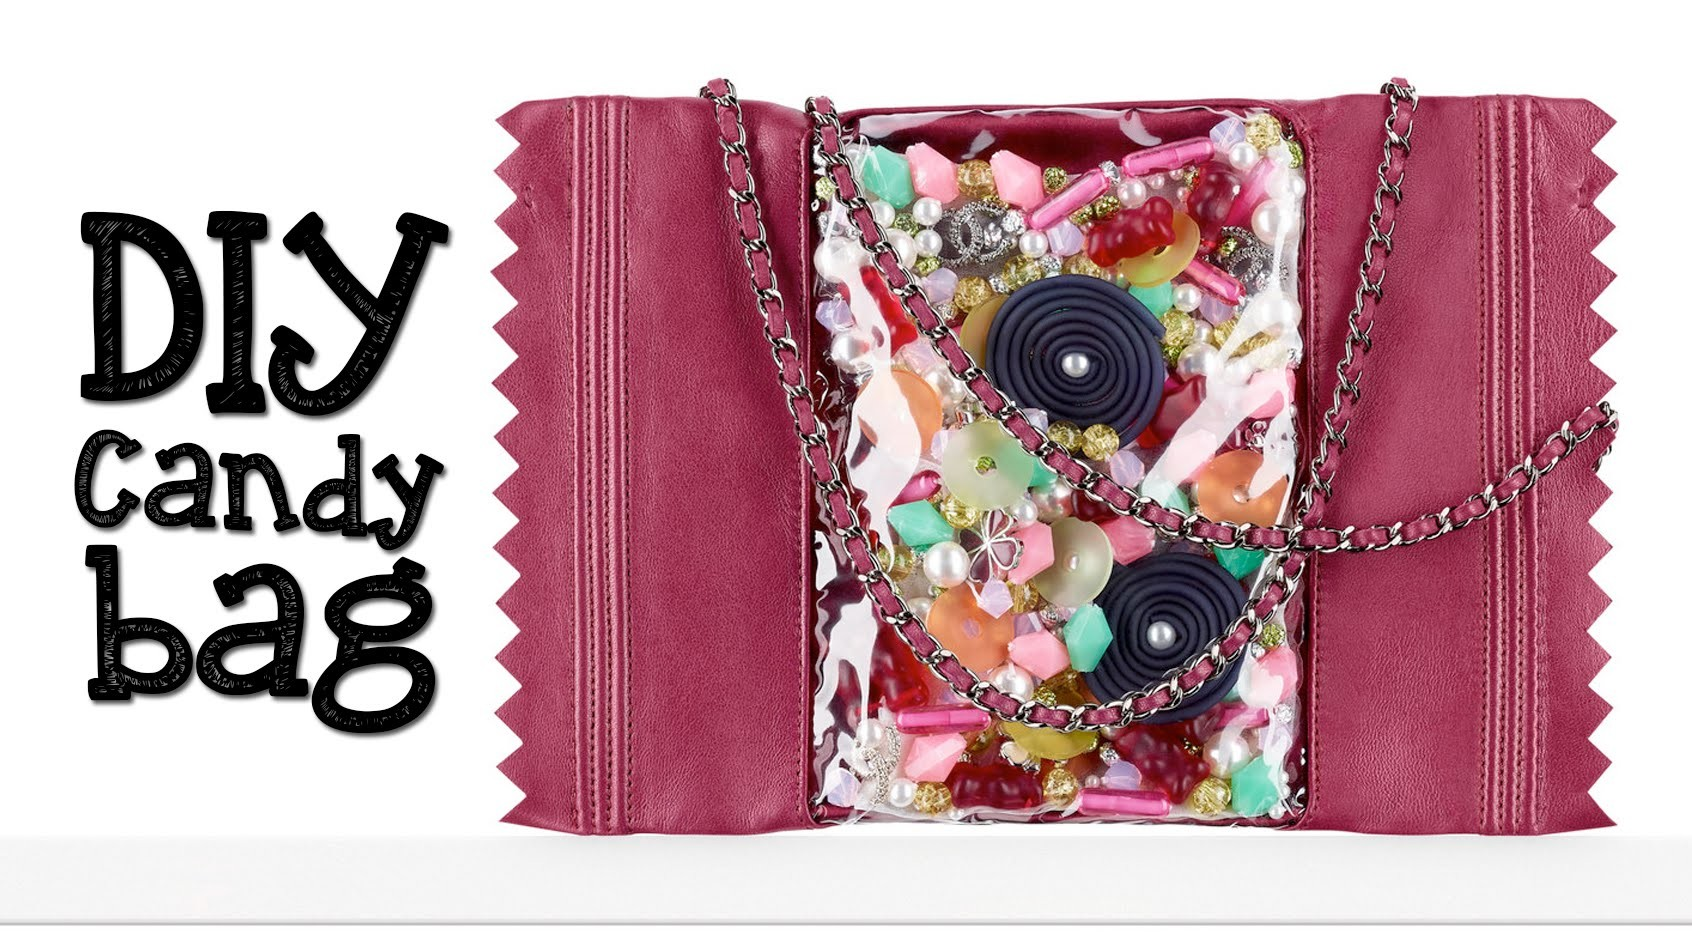 DIY Candy Bag - Chanel